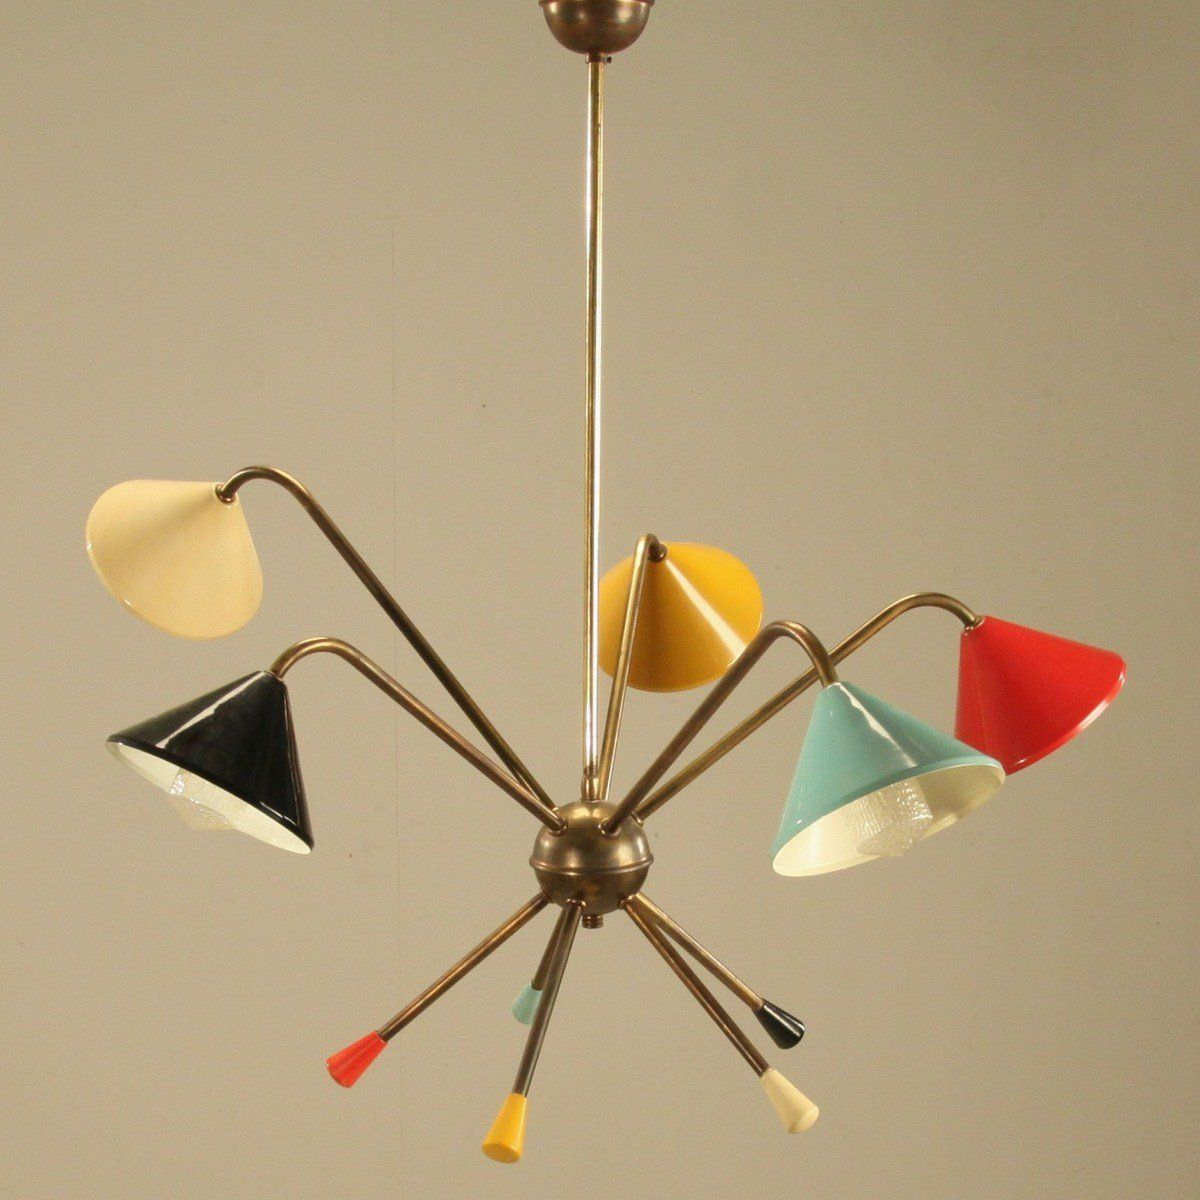 1950s Italian Atomic Chandelier Light Your Way To A More Colorful Tomorrowland